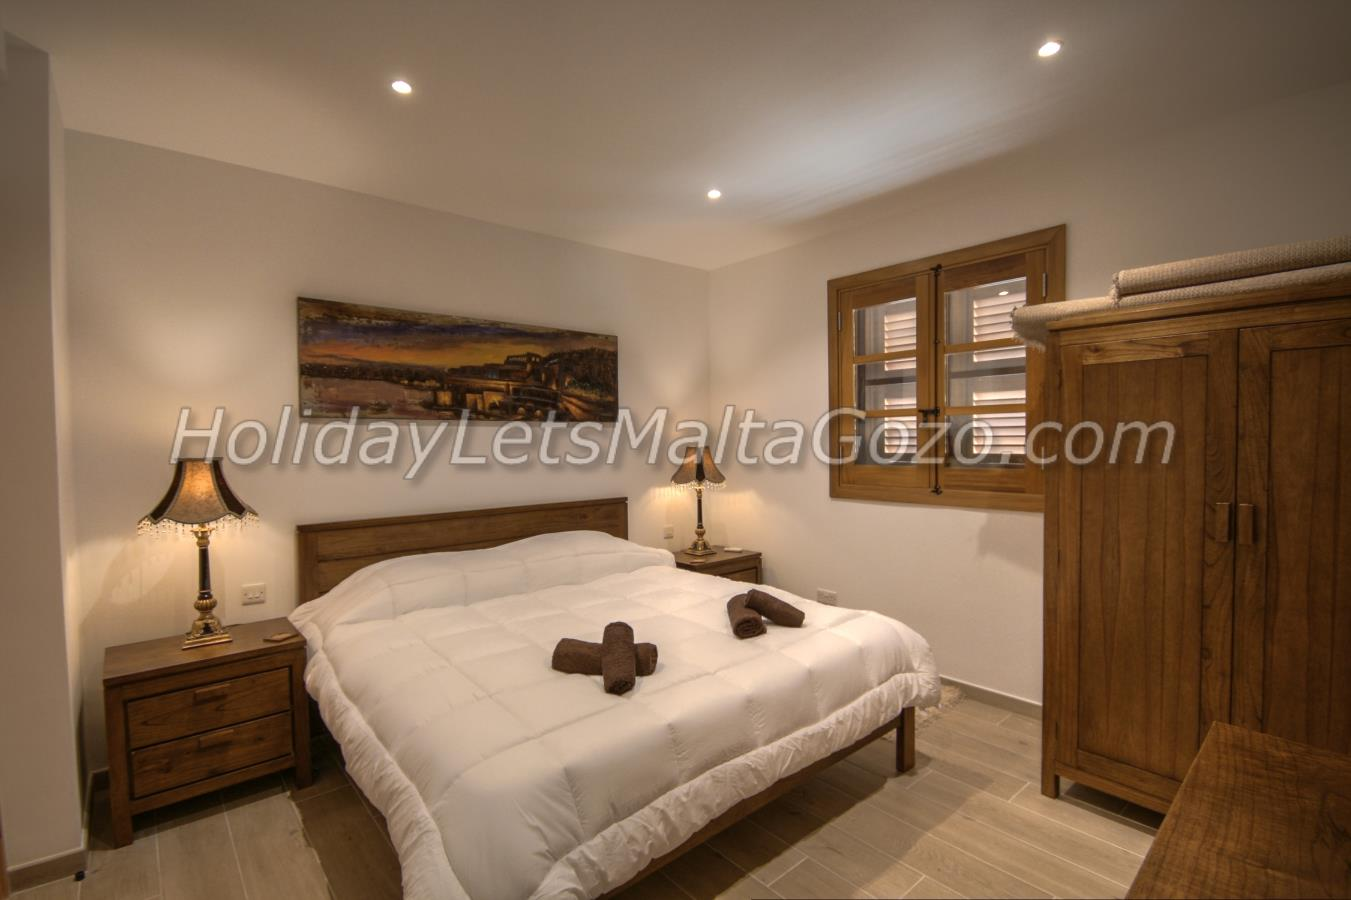 Double Bedroom with large shower cubicle en-suite facility